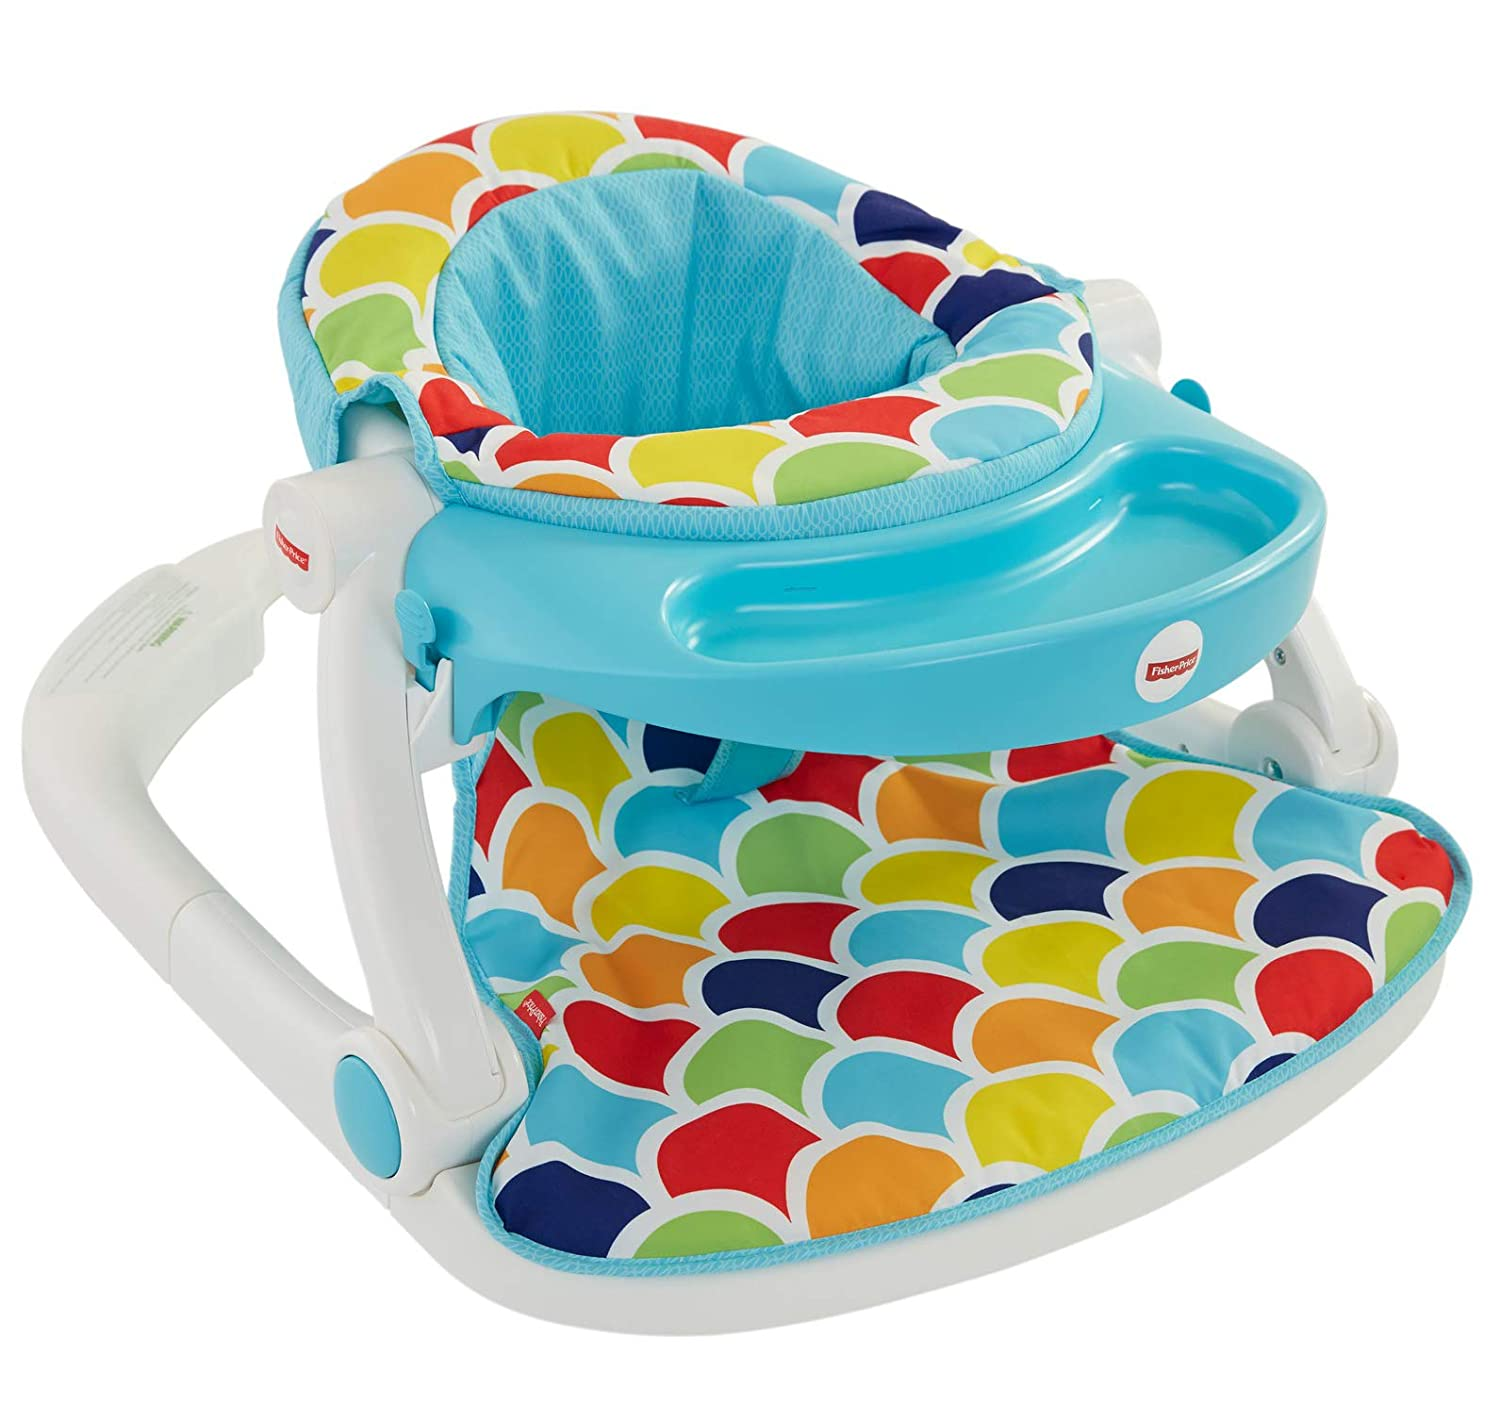 Fisher-Price Sit-Me-Up Floor Seat with Toy Tray, Happy Hills Amazonca/FISNE DRH80